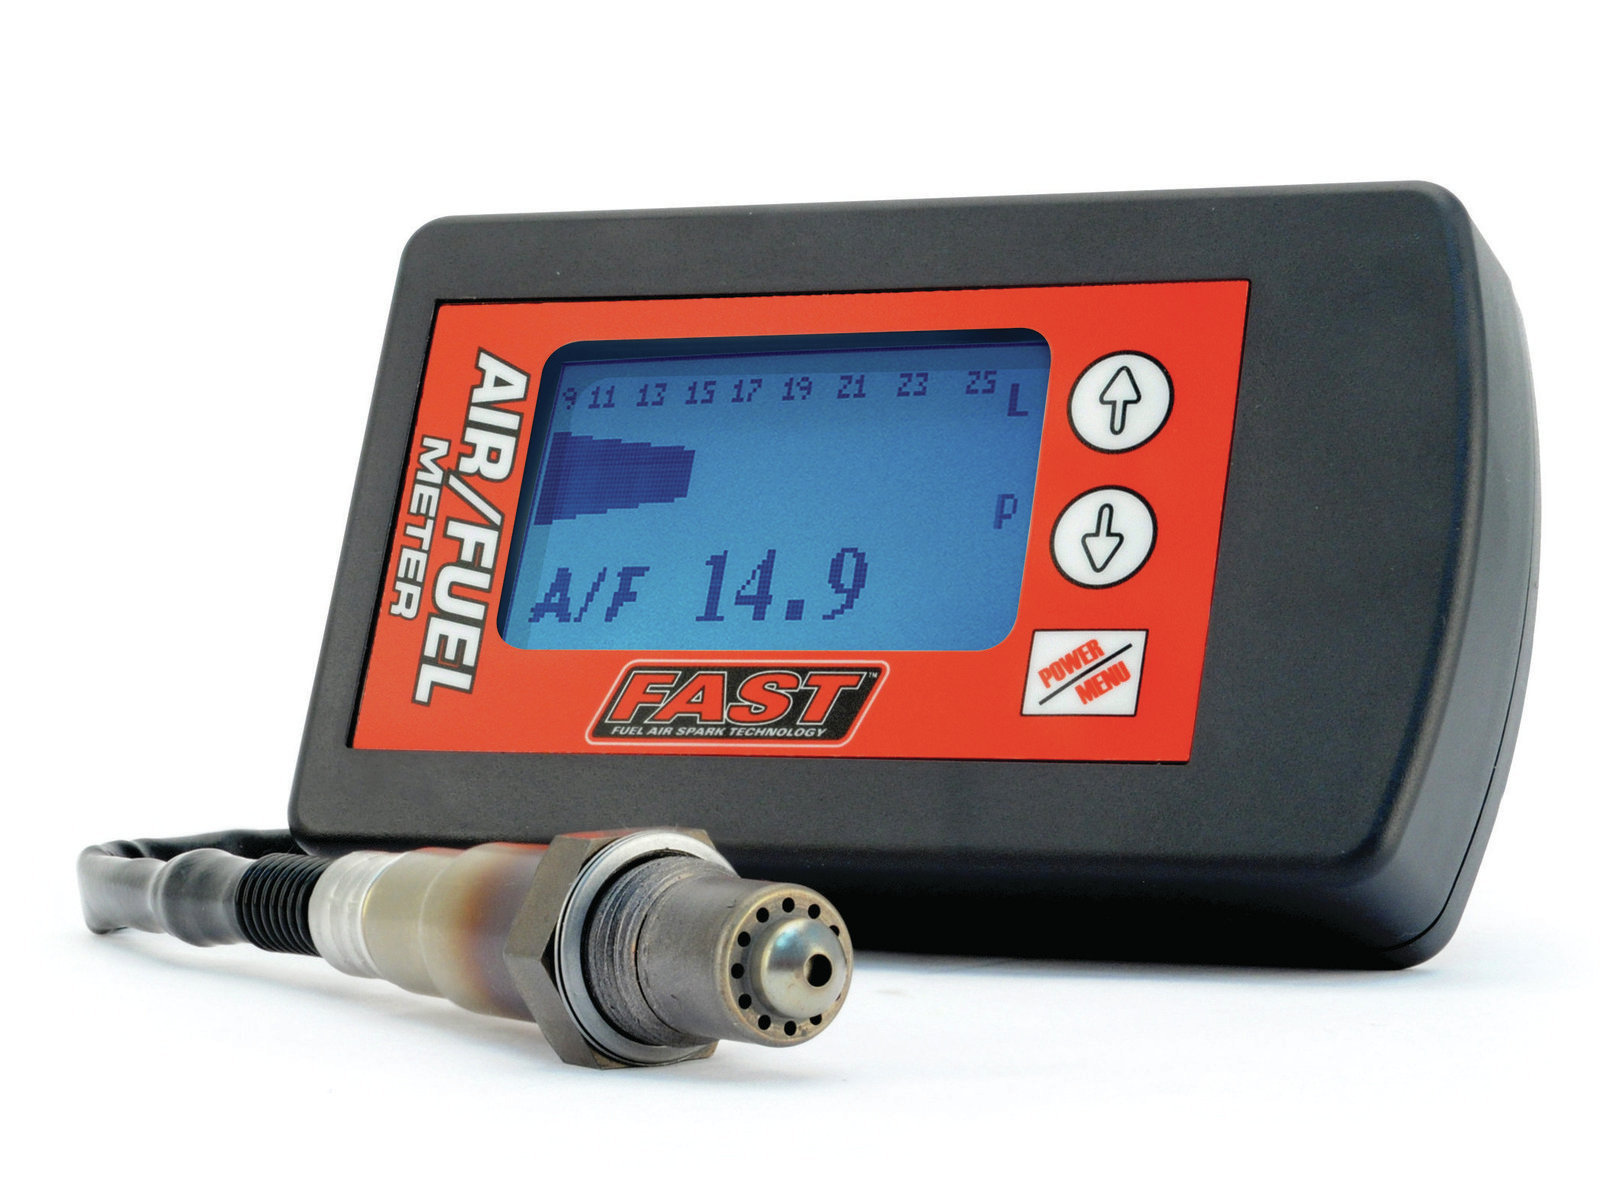 Fast Air Fuel Ratio Meter Popular Carb Tuning Hot Rod Network Need A Diagram Or Picture Of How The Carburetor Adjustments Reader 170401 Is Simple To Read And Very Easy